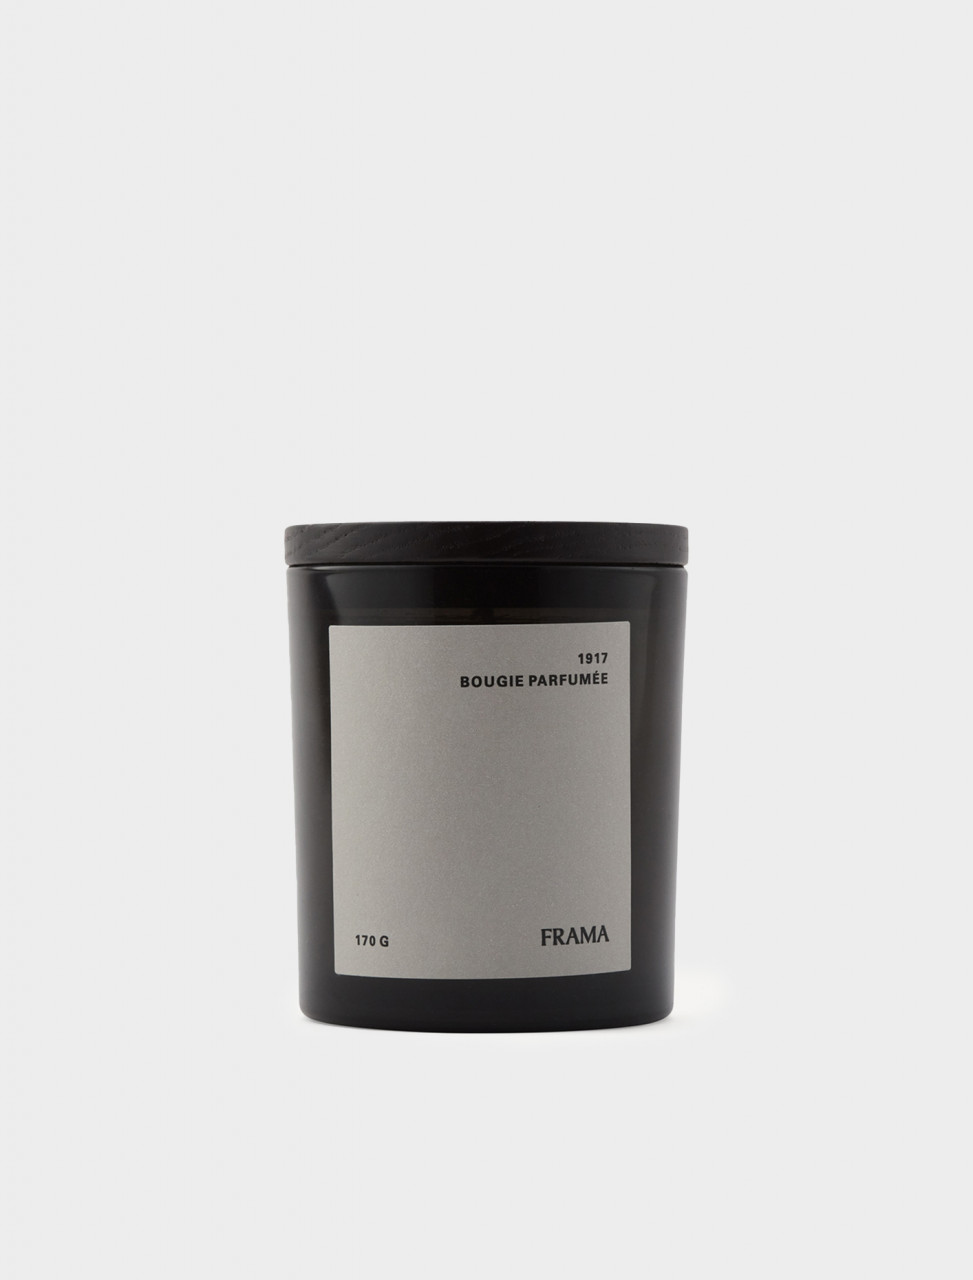 322-11305 1917 SCENTED CANDLE